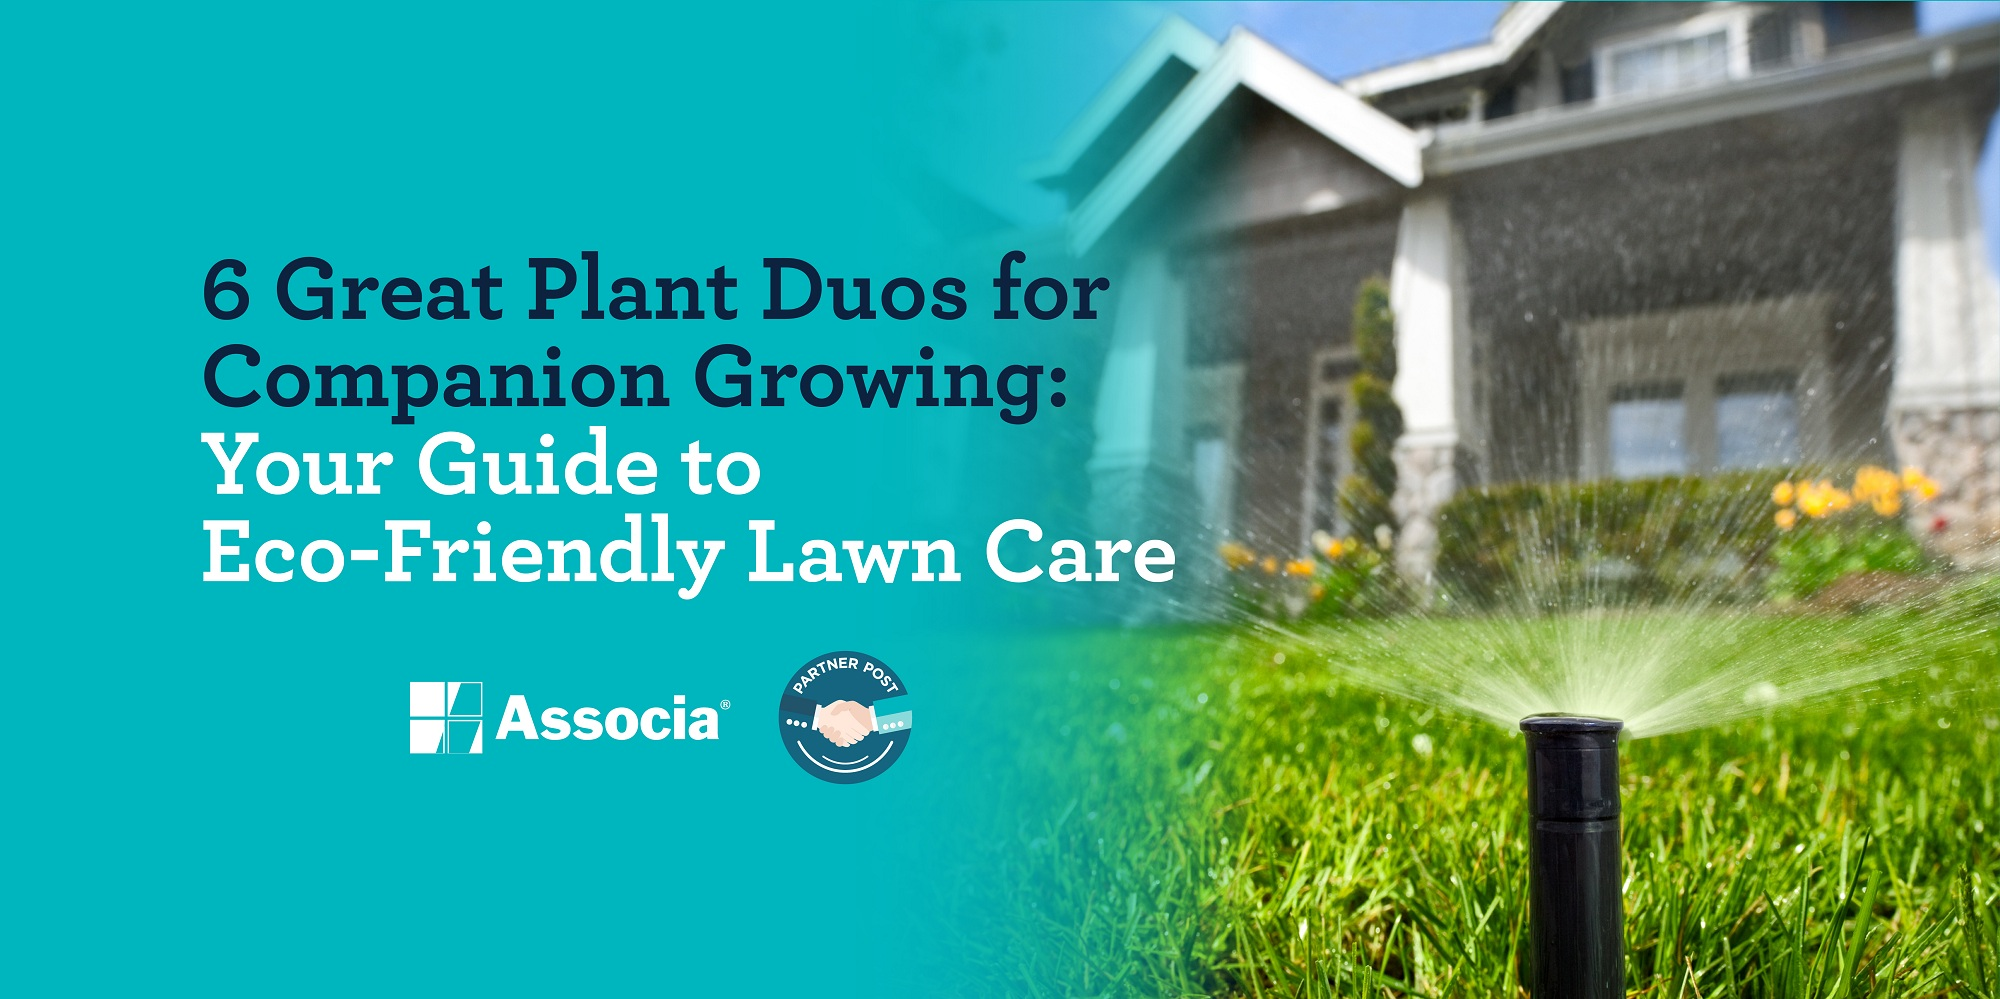 When The Lawn And Garden Are Ailing Many Of Us Instinctively Reach For Pesticides Poisons Offer A Quick Fix Landscaping Problems But In Grand